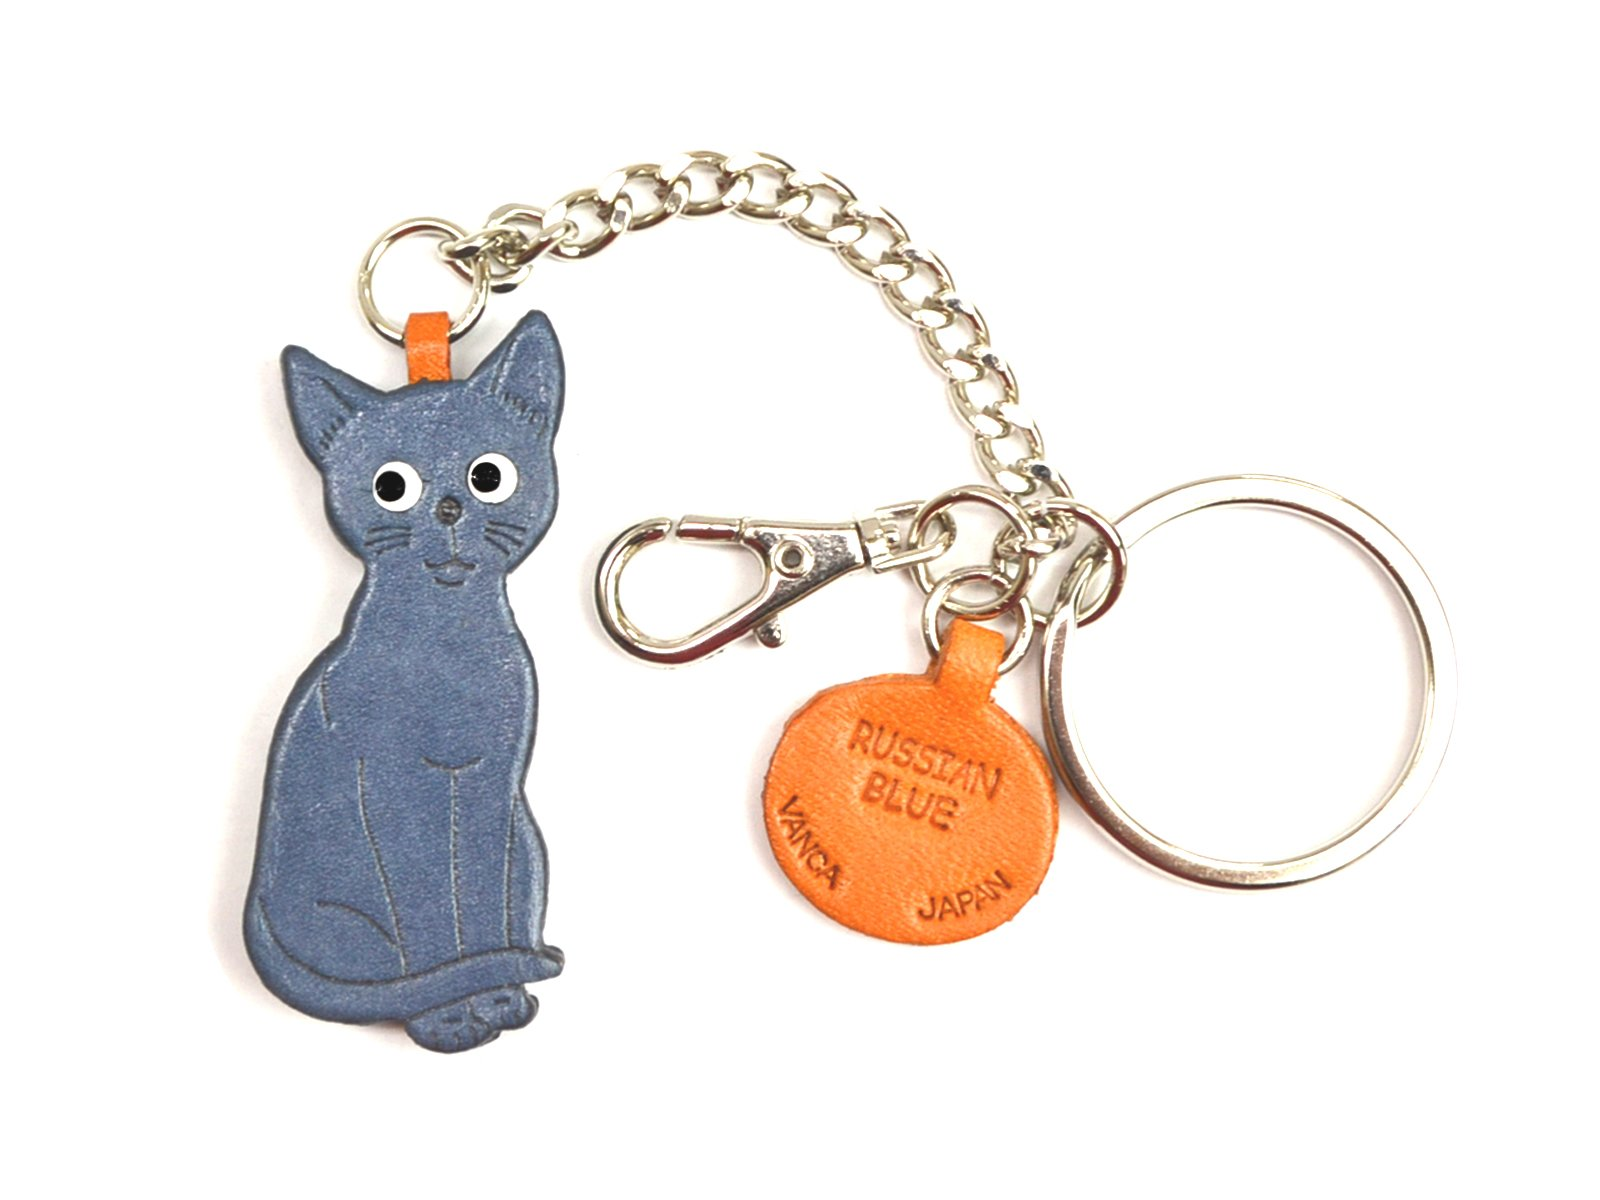 Russian Blue Leather Bag/Key Ring Charm VANCA CRAFT-Collectible Keychain Made in Japan